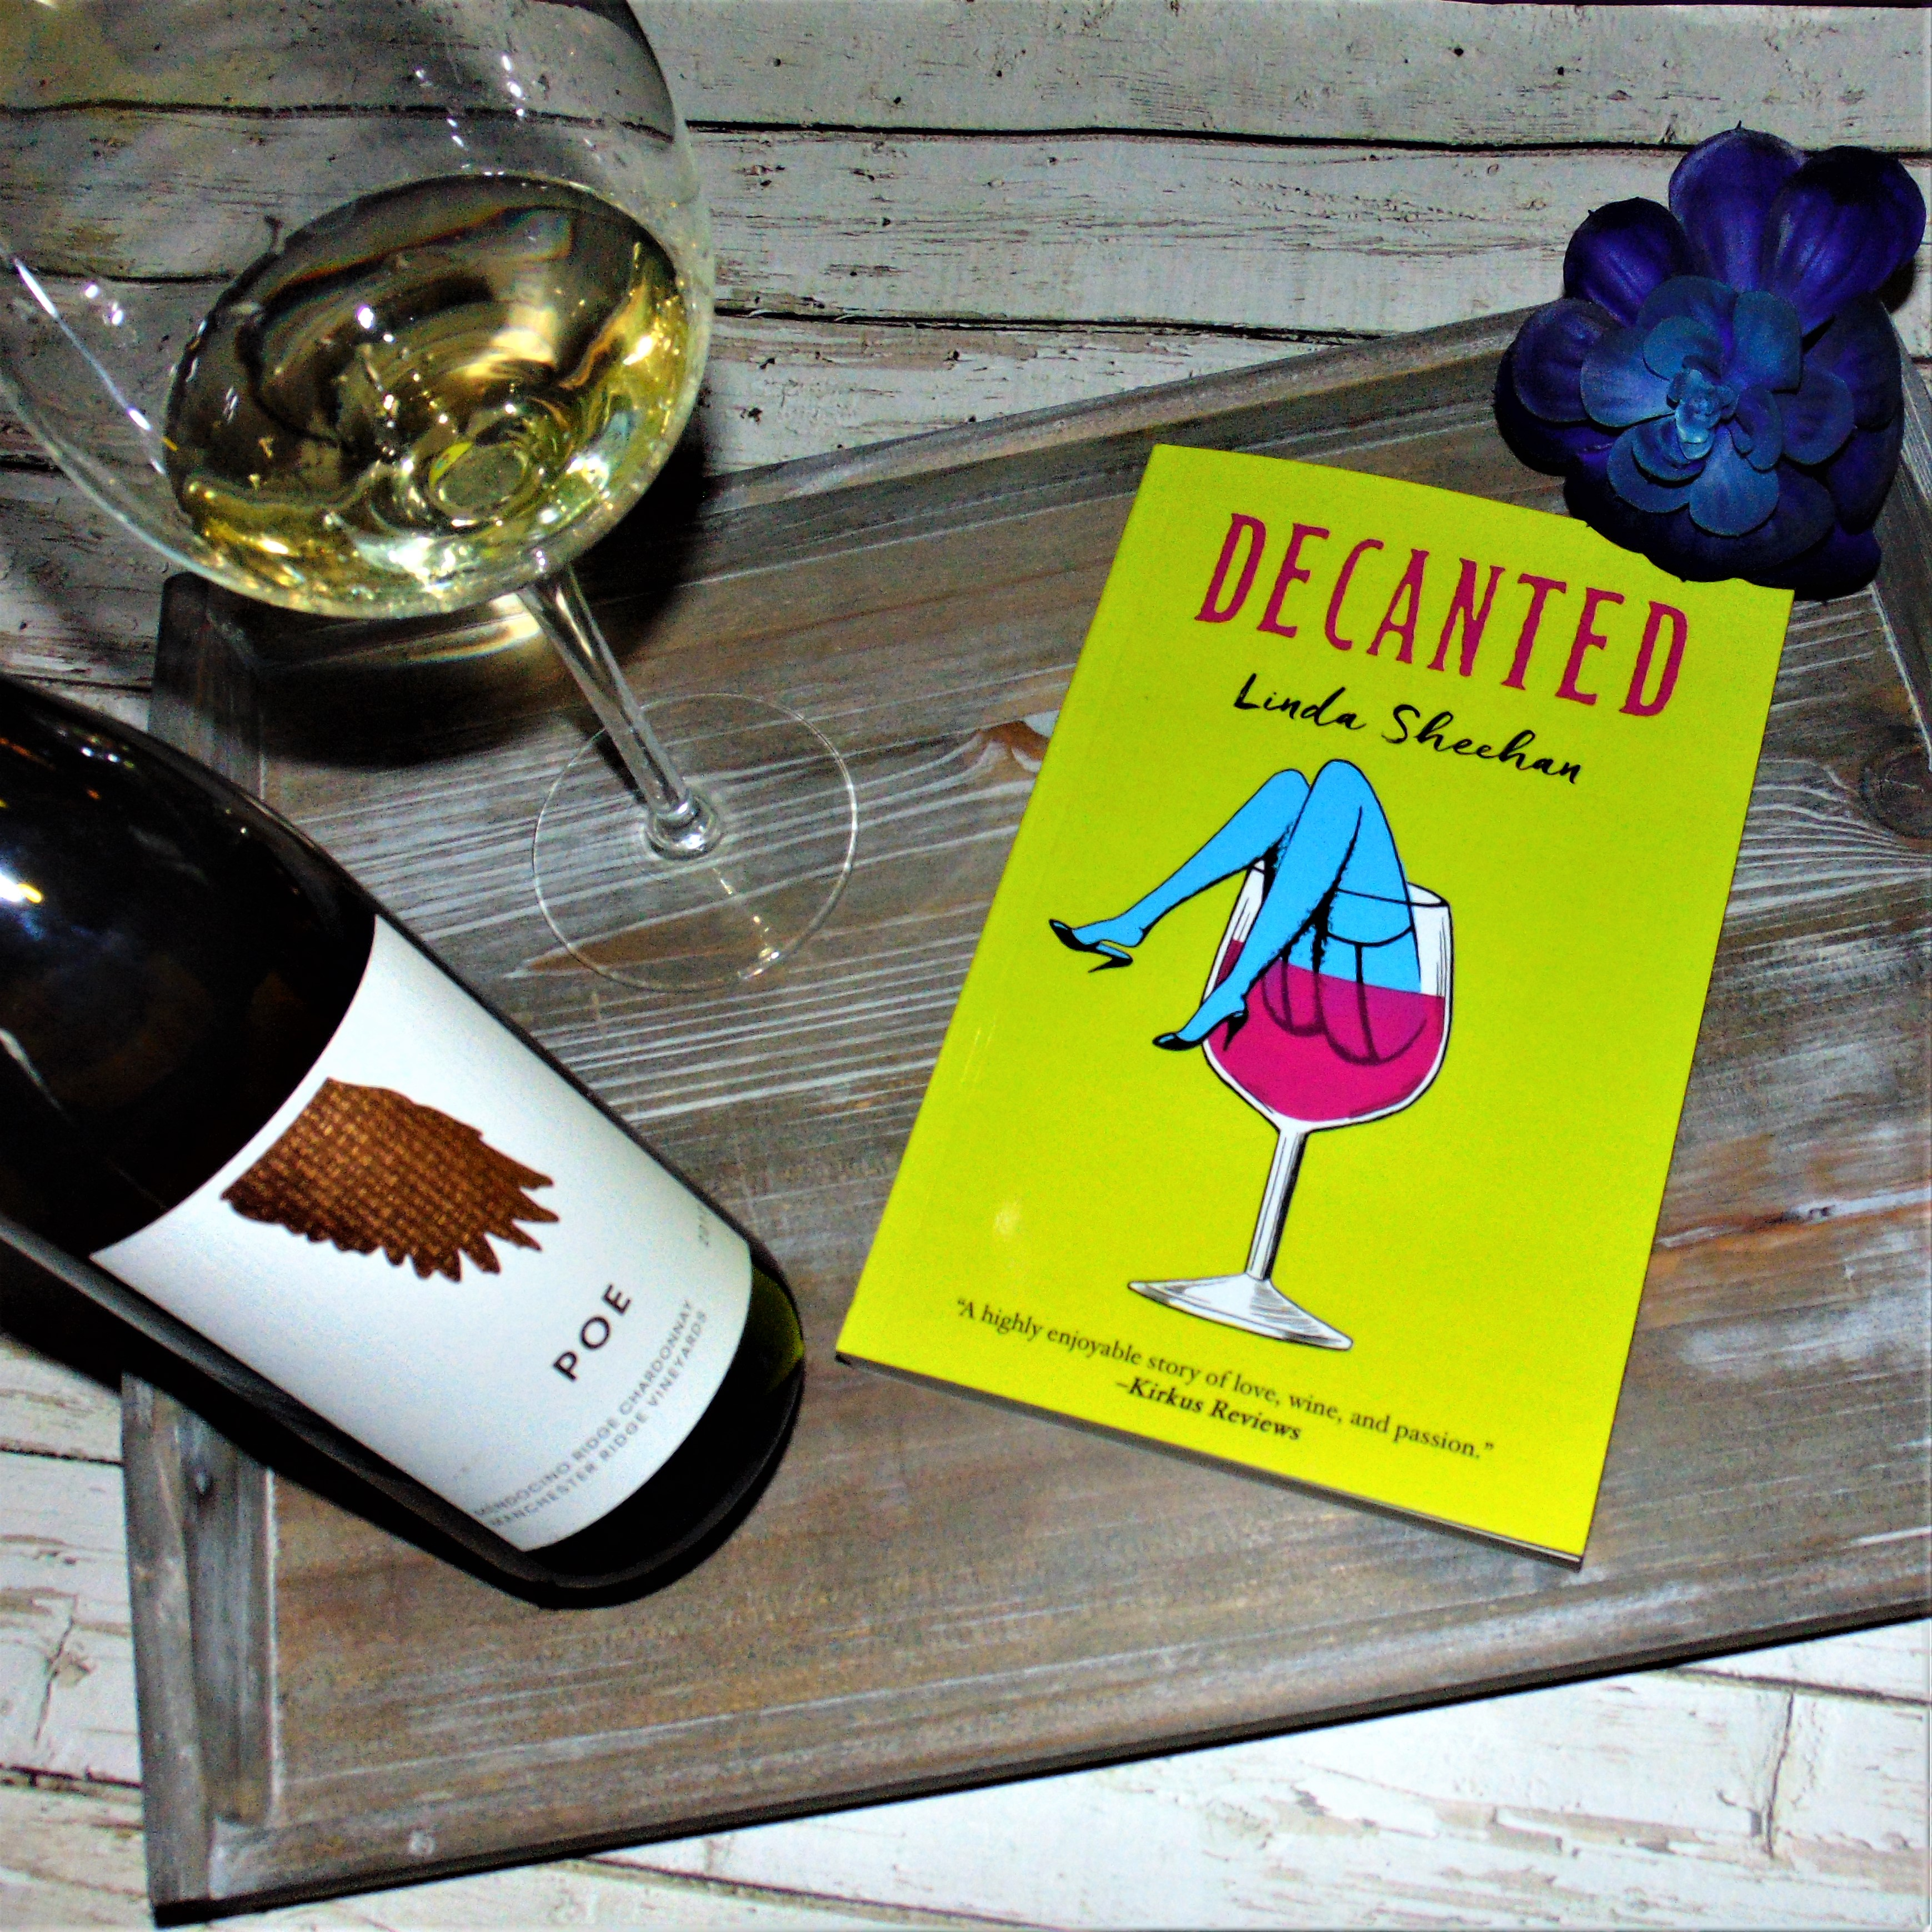 """Book """"Decanted"""" on wooden tray with bottle of win and poured glass of white wine"""